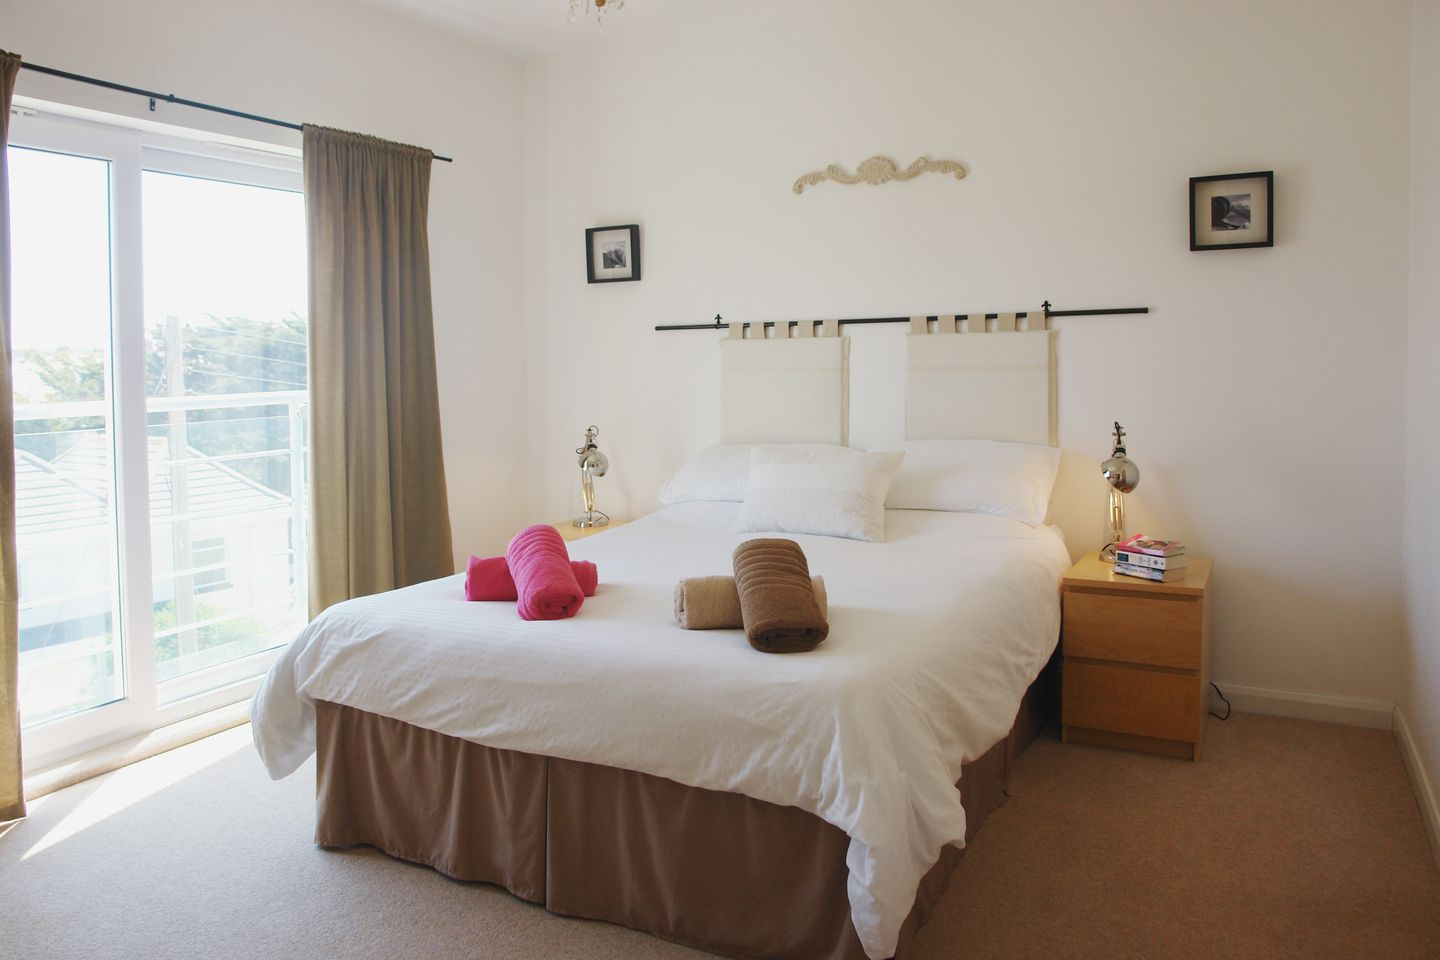 11 Hawkers Court Bedroom With View